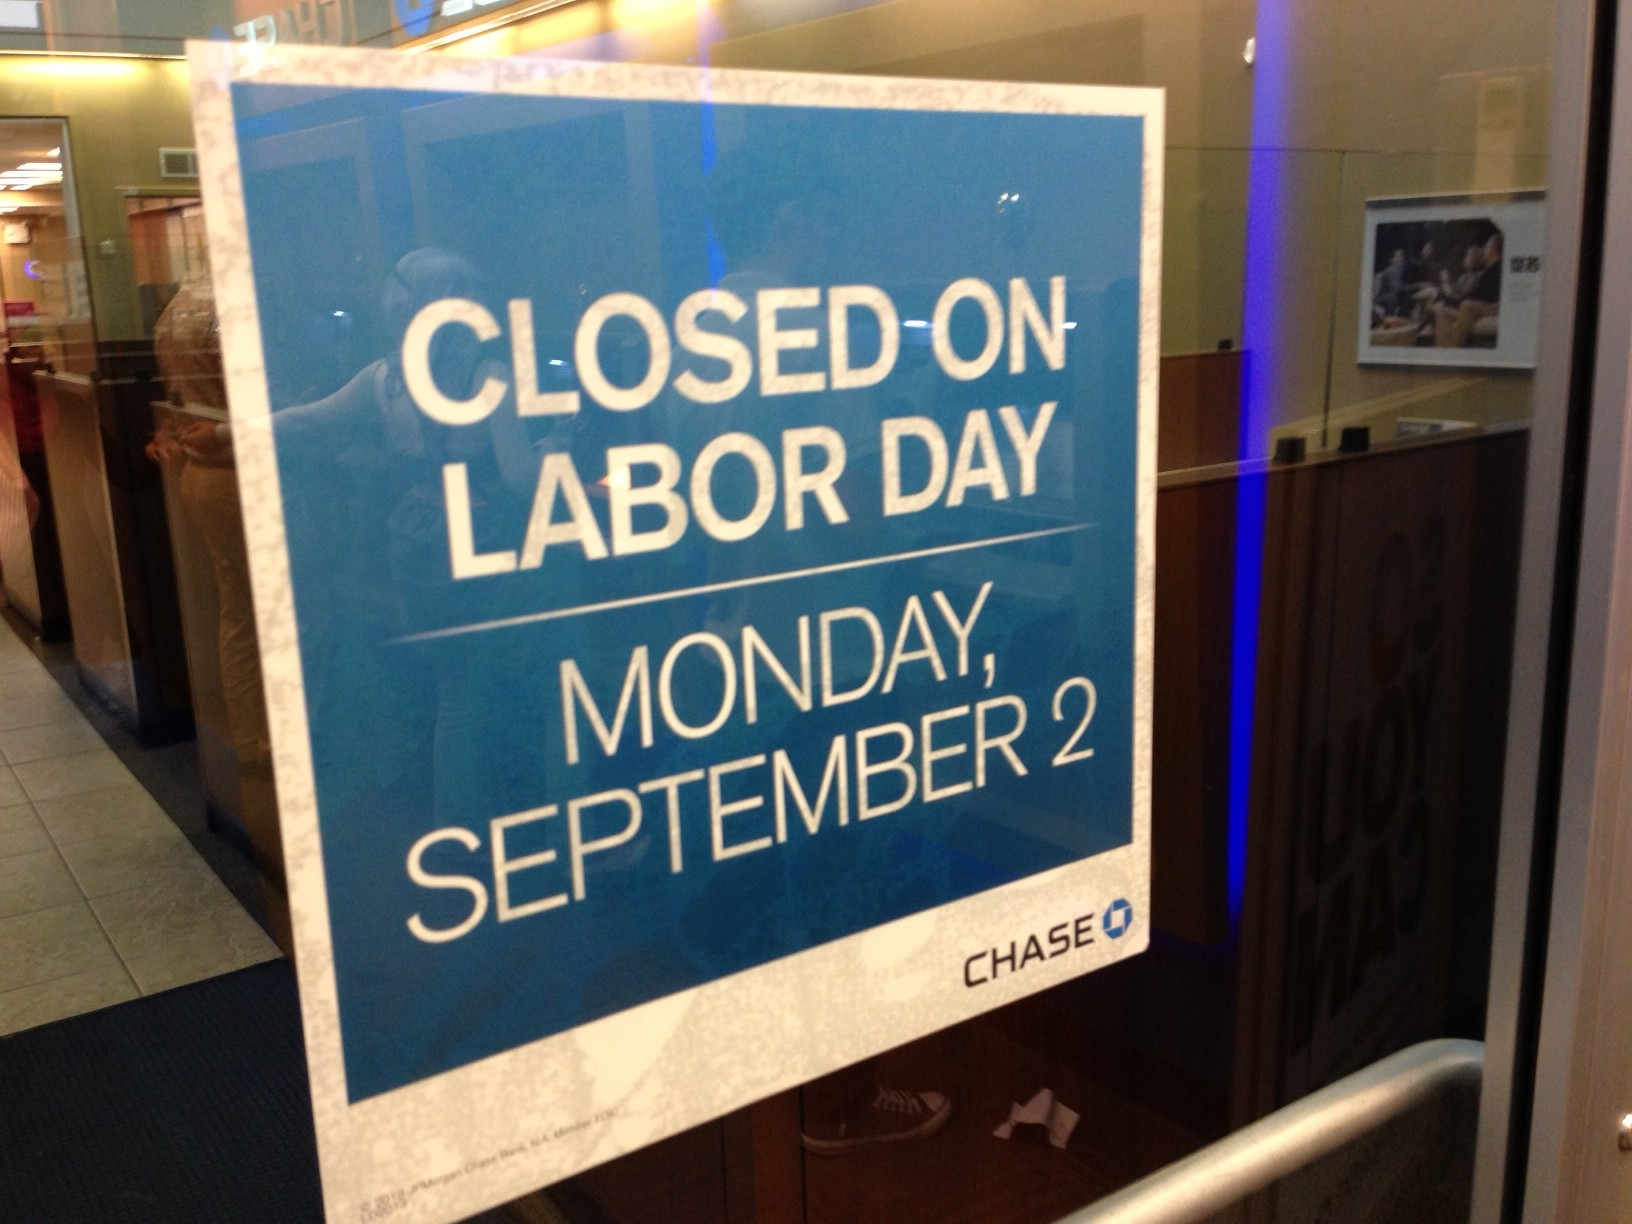 Chase Labor Day Bank Branch